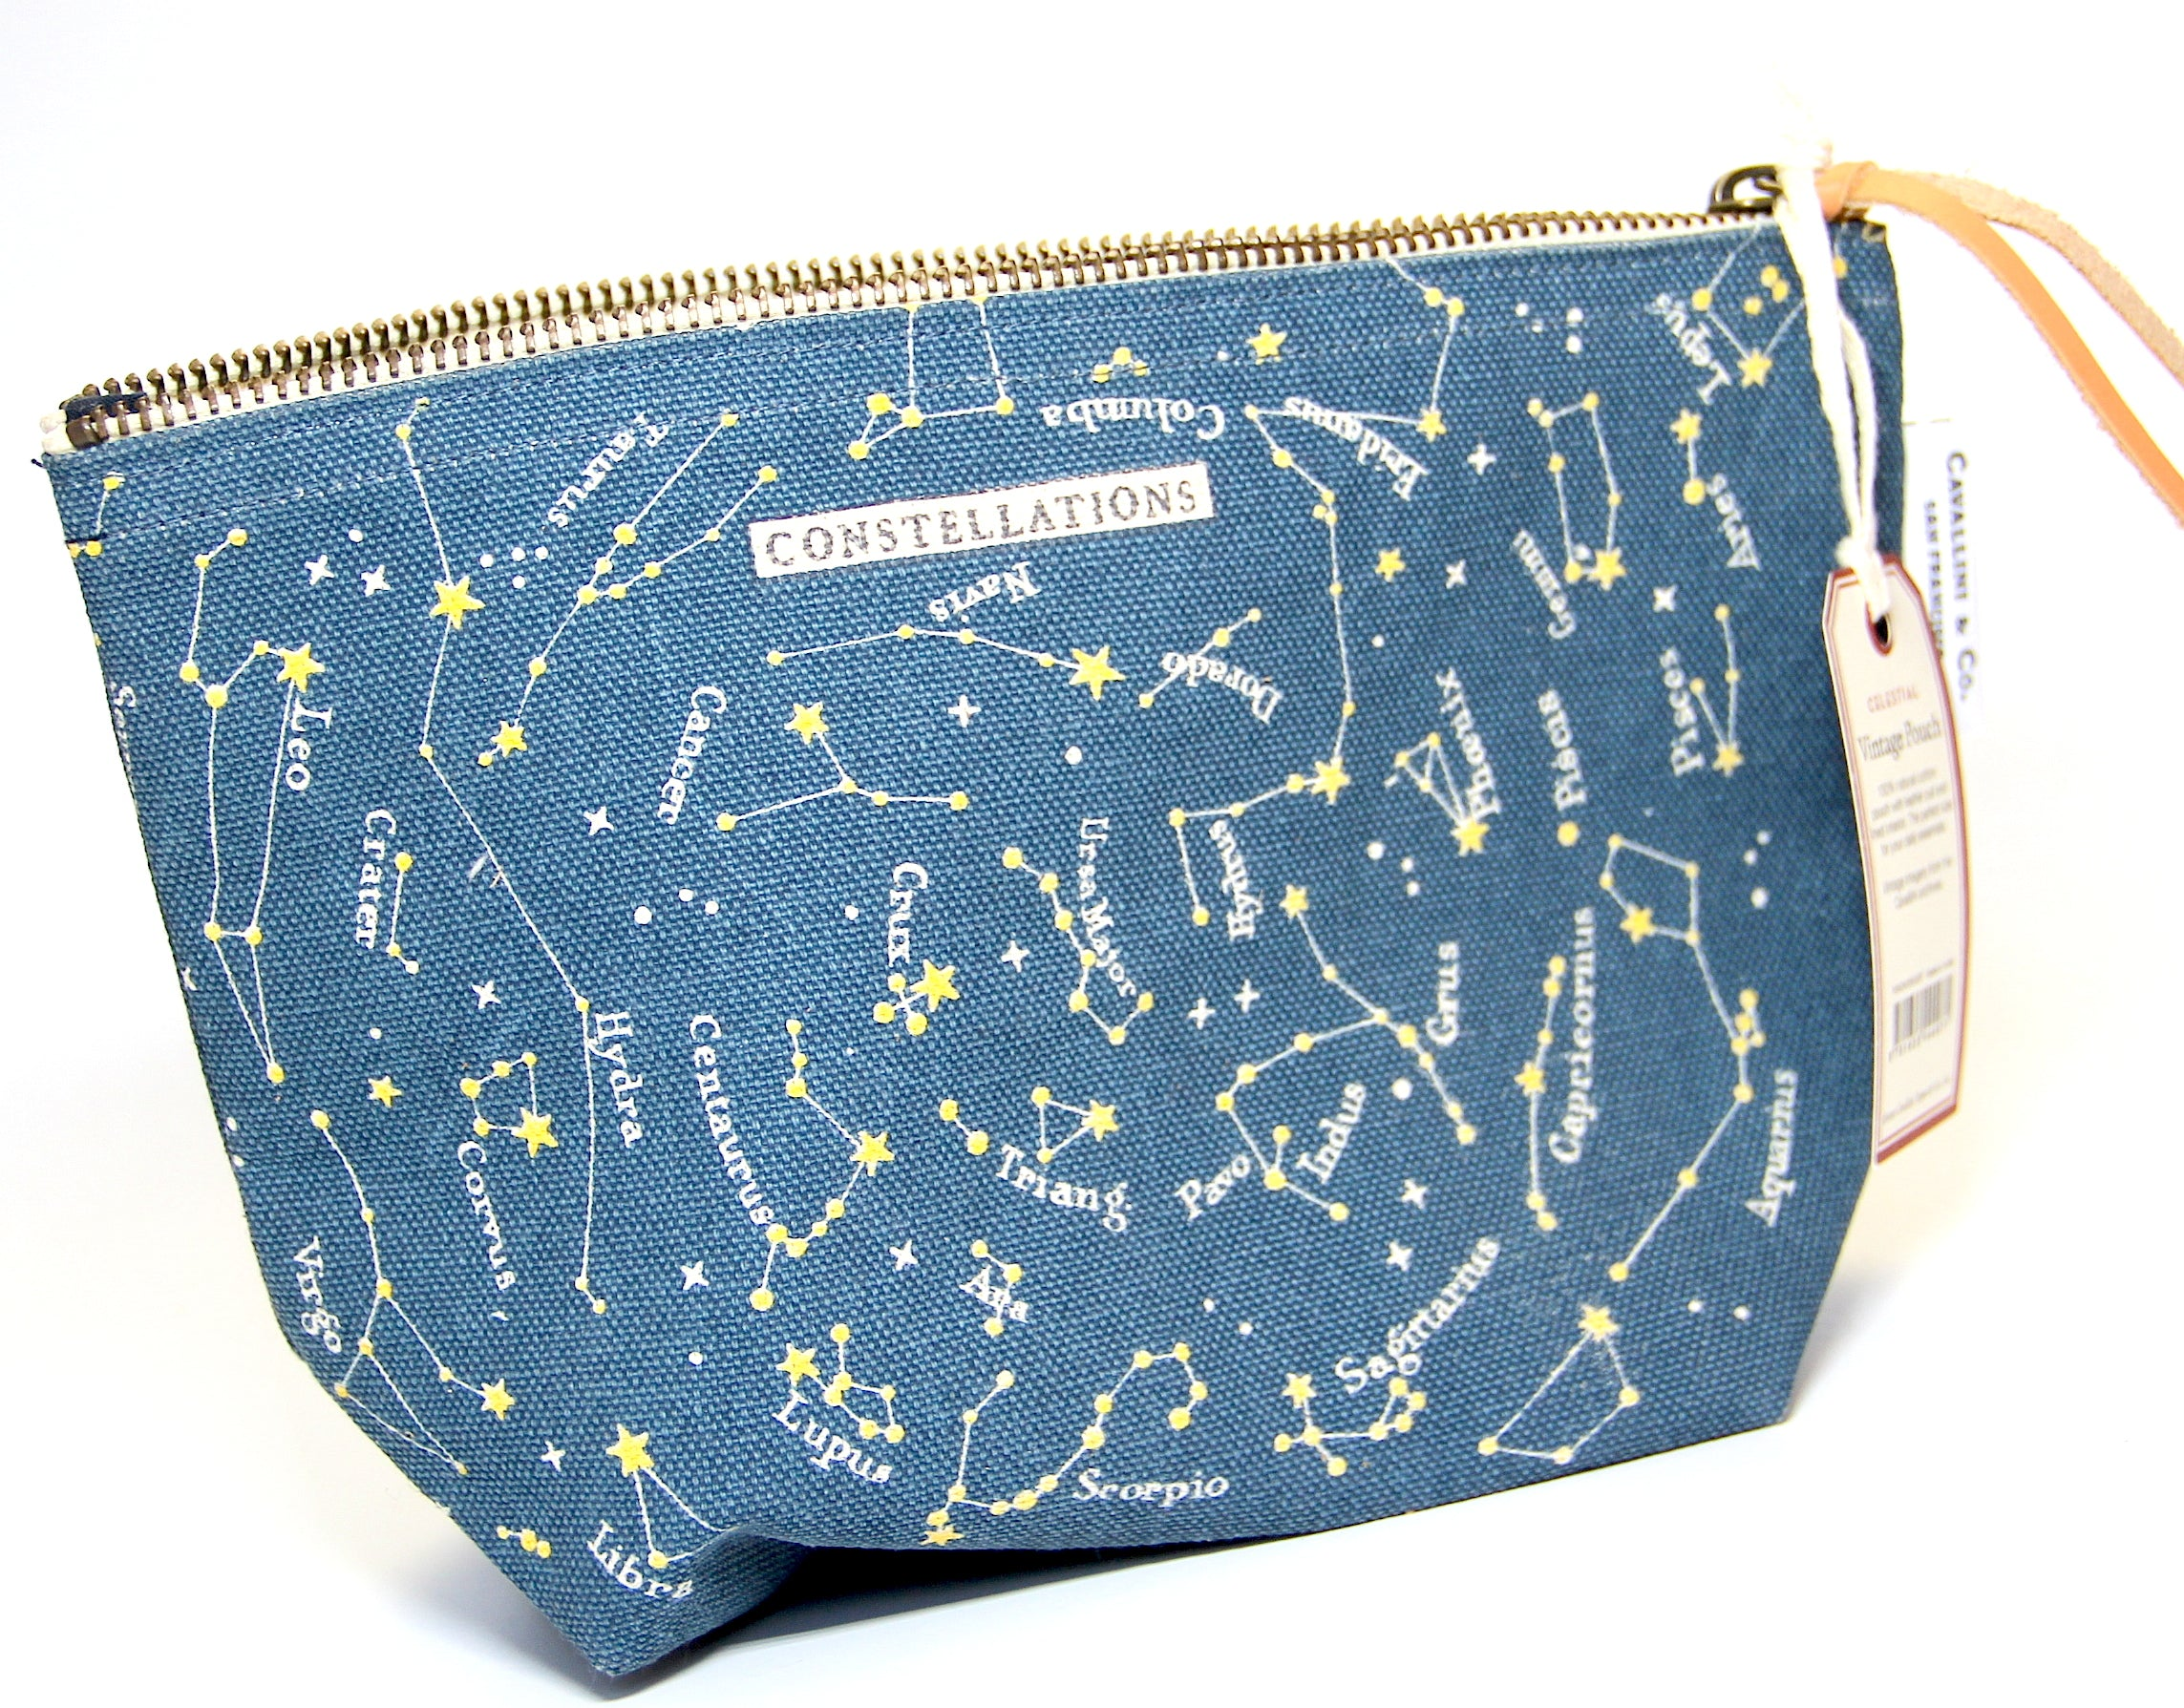 Constellation Pouch